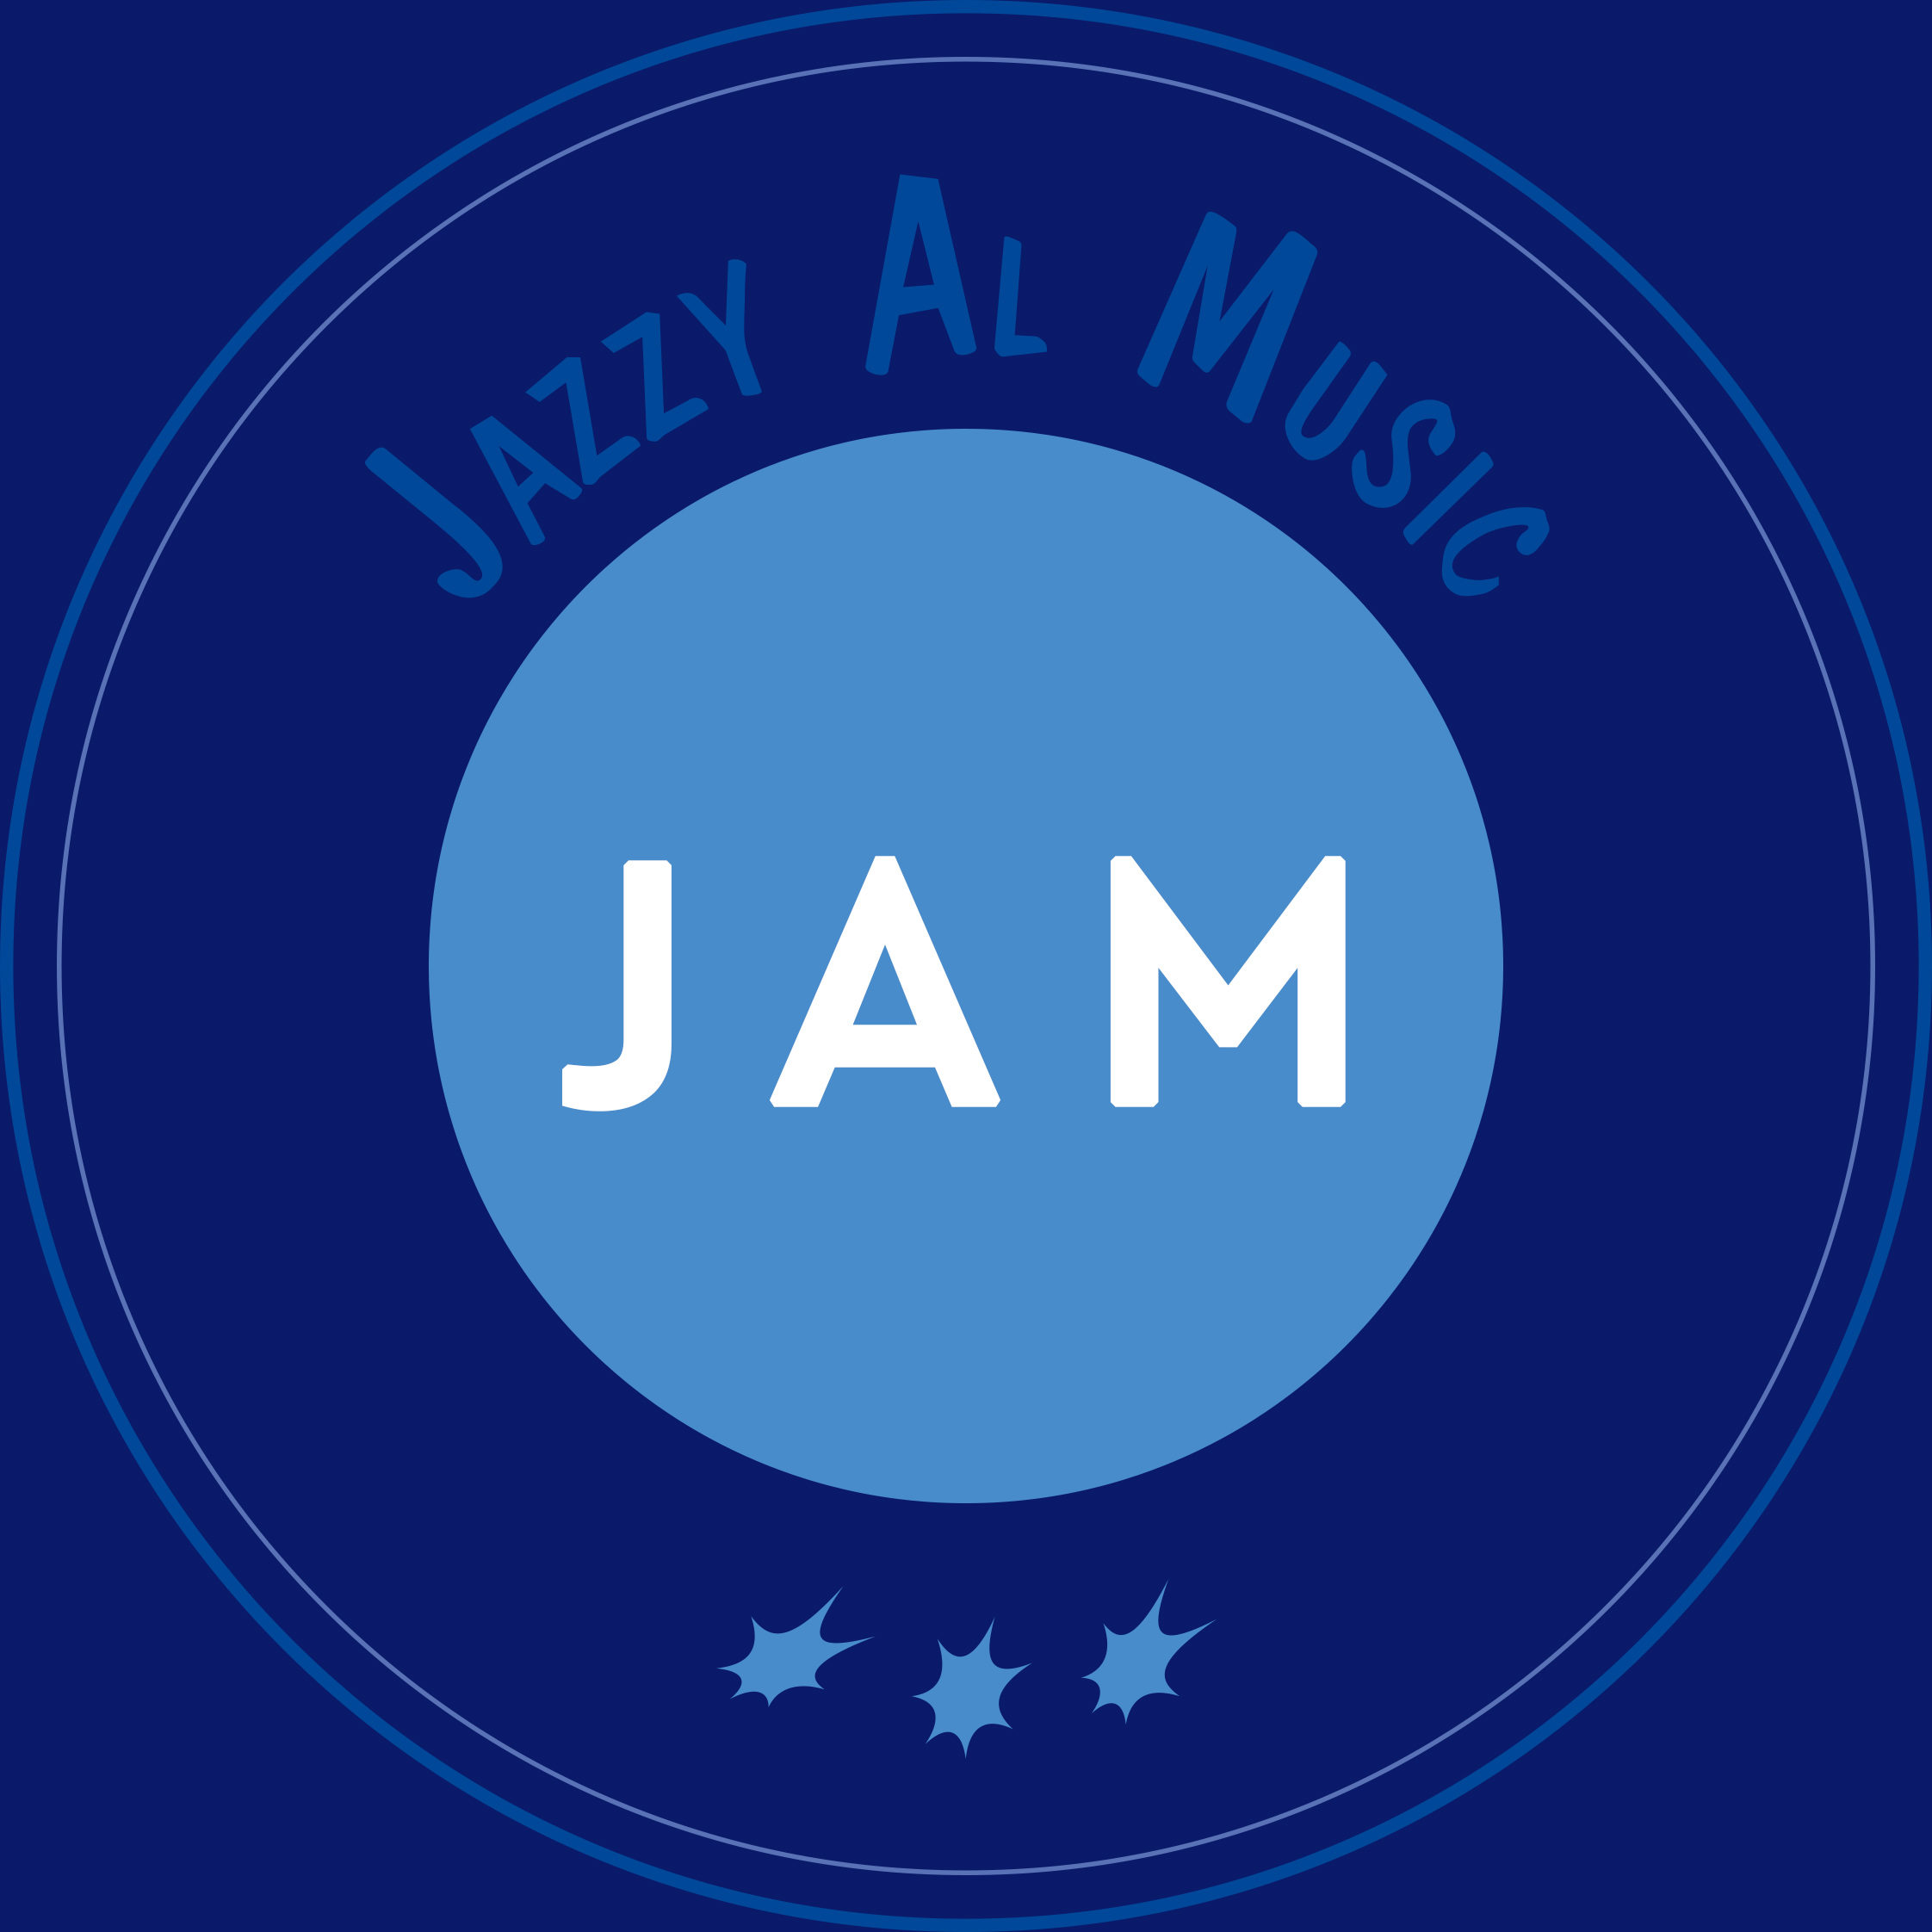 jazzyalmusic.at